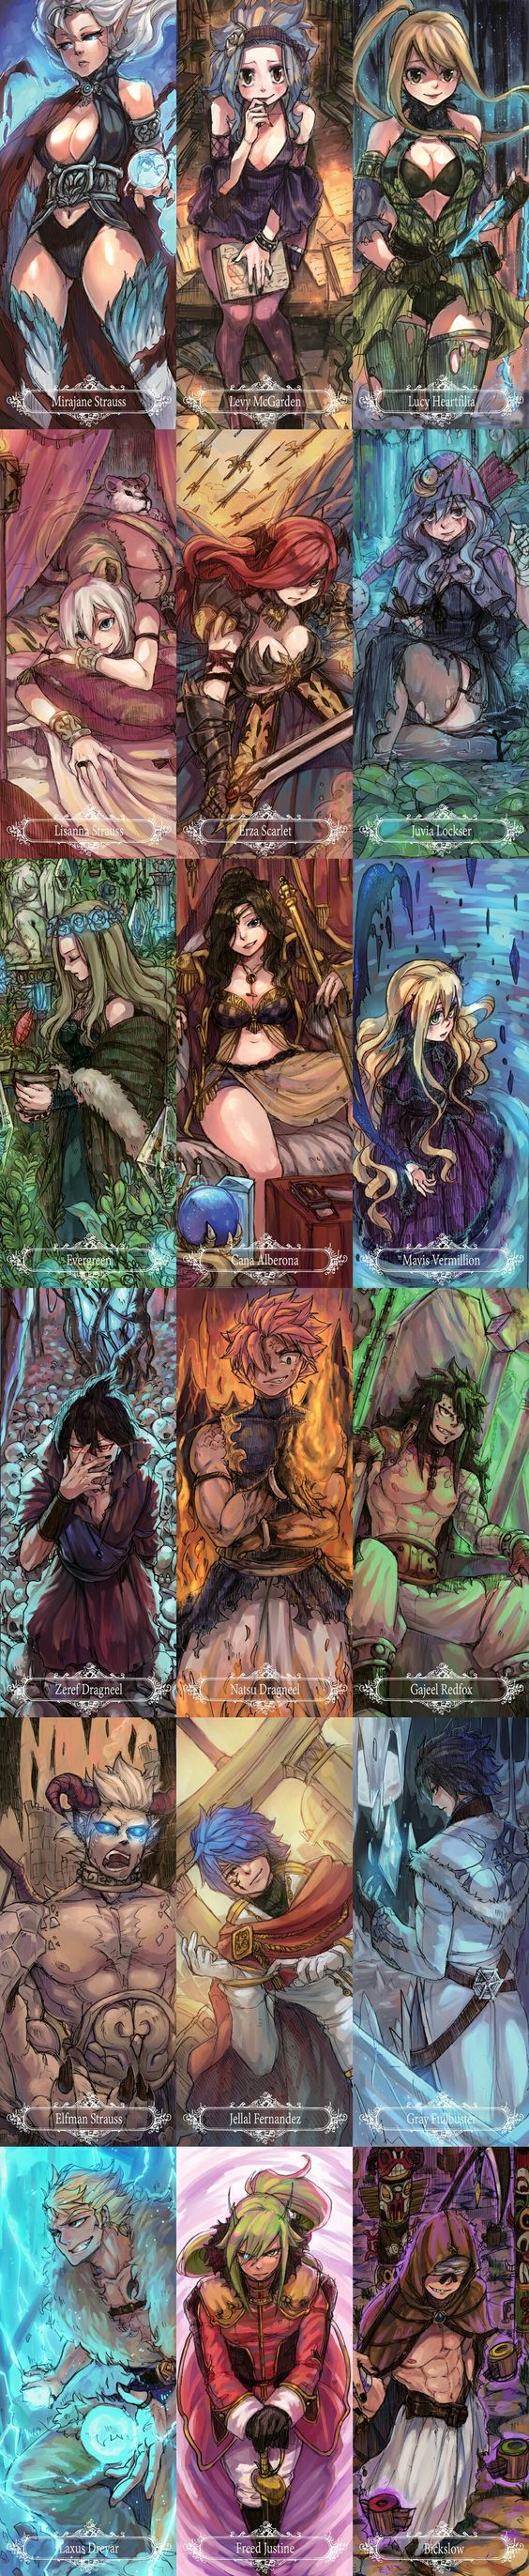 Fairy Tail Fan Art by Alyx Drake